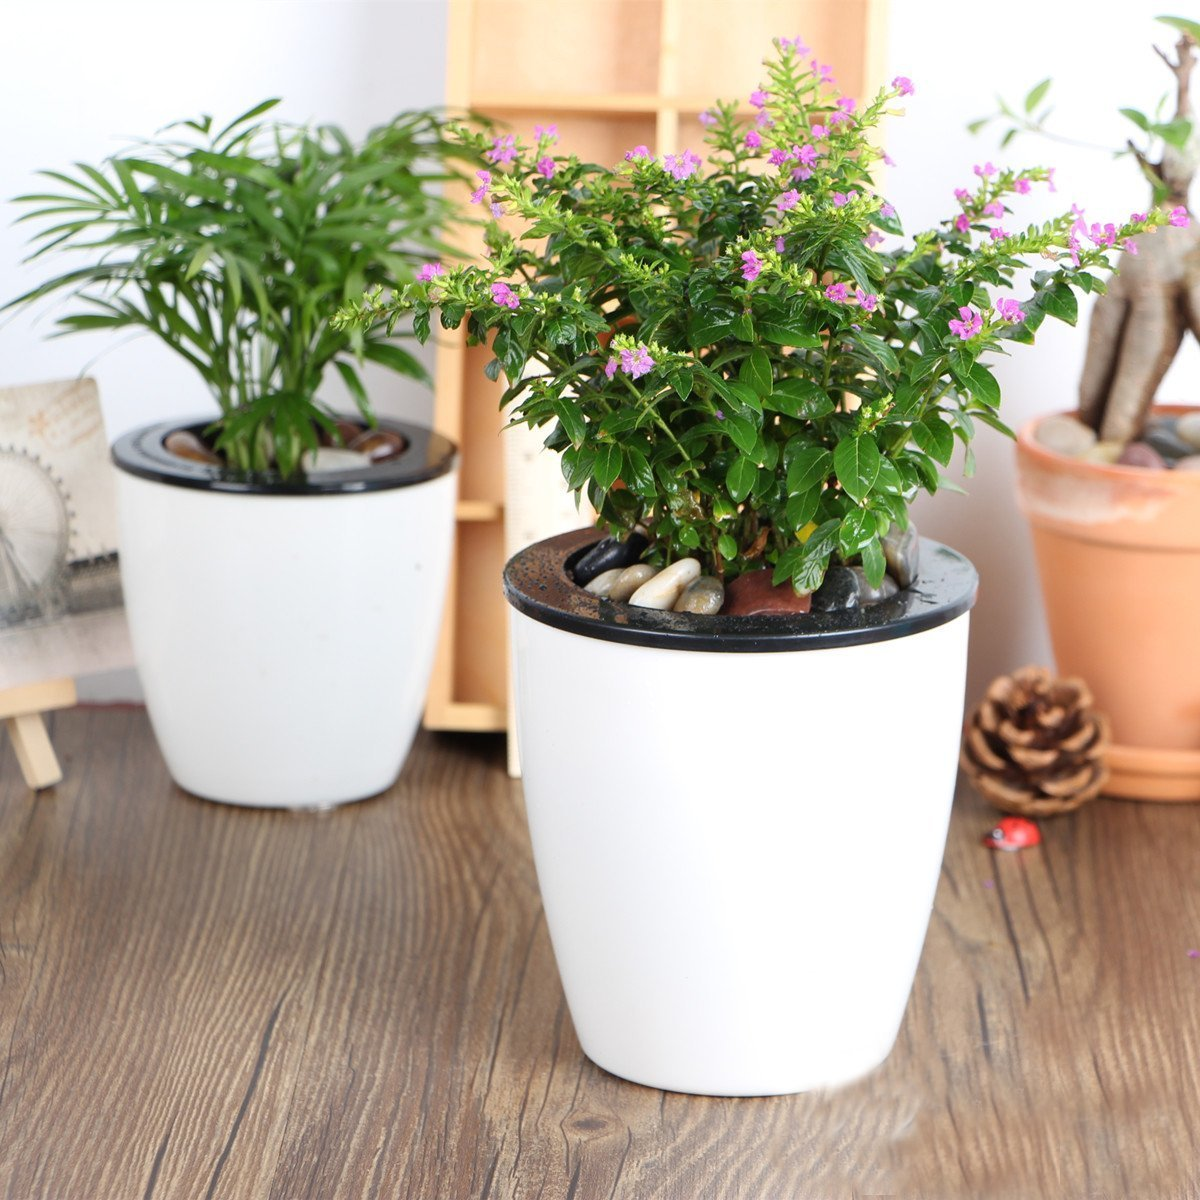 Mkouo 3 Pack Self Watering Planter White Plastic Flower Plant Pot, 12(Dia) x 11(H) cm, 3 Size/S